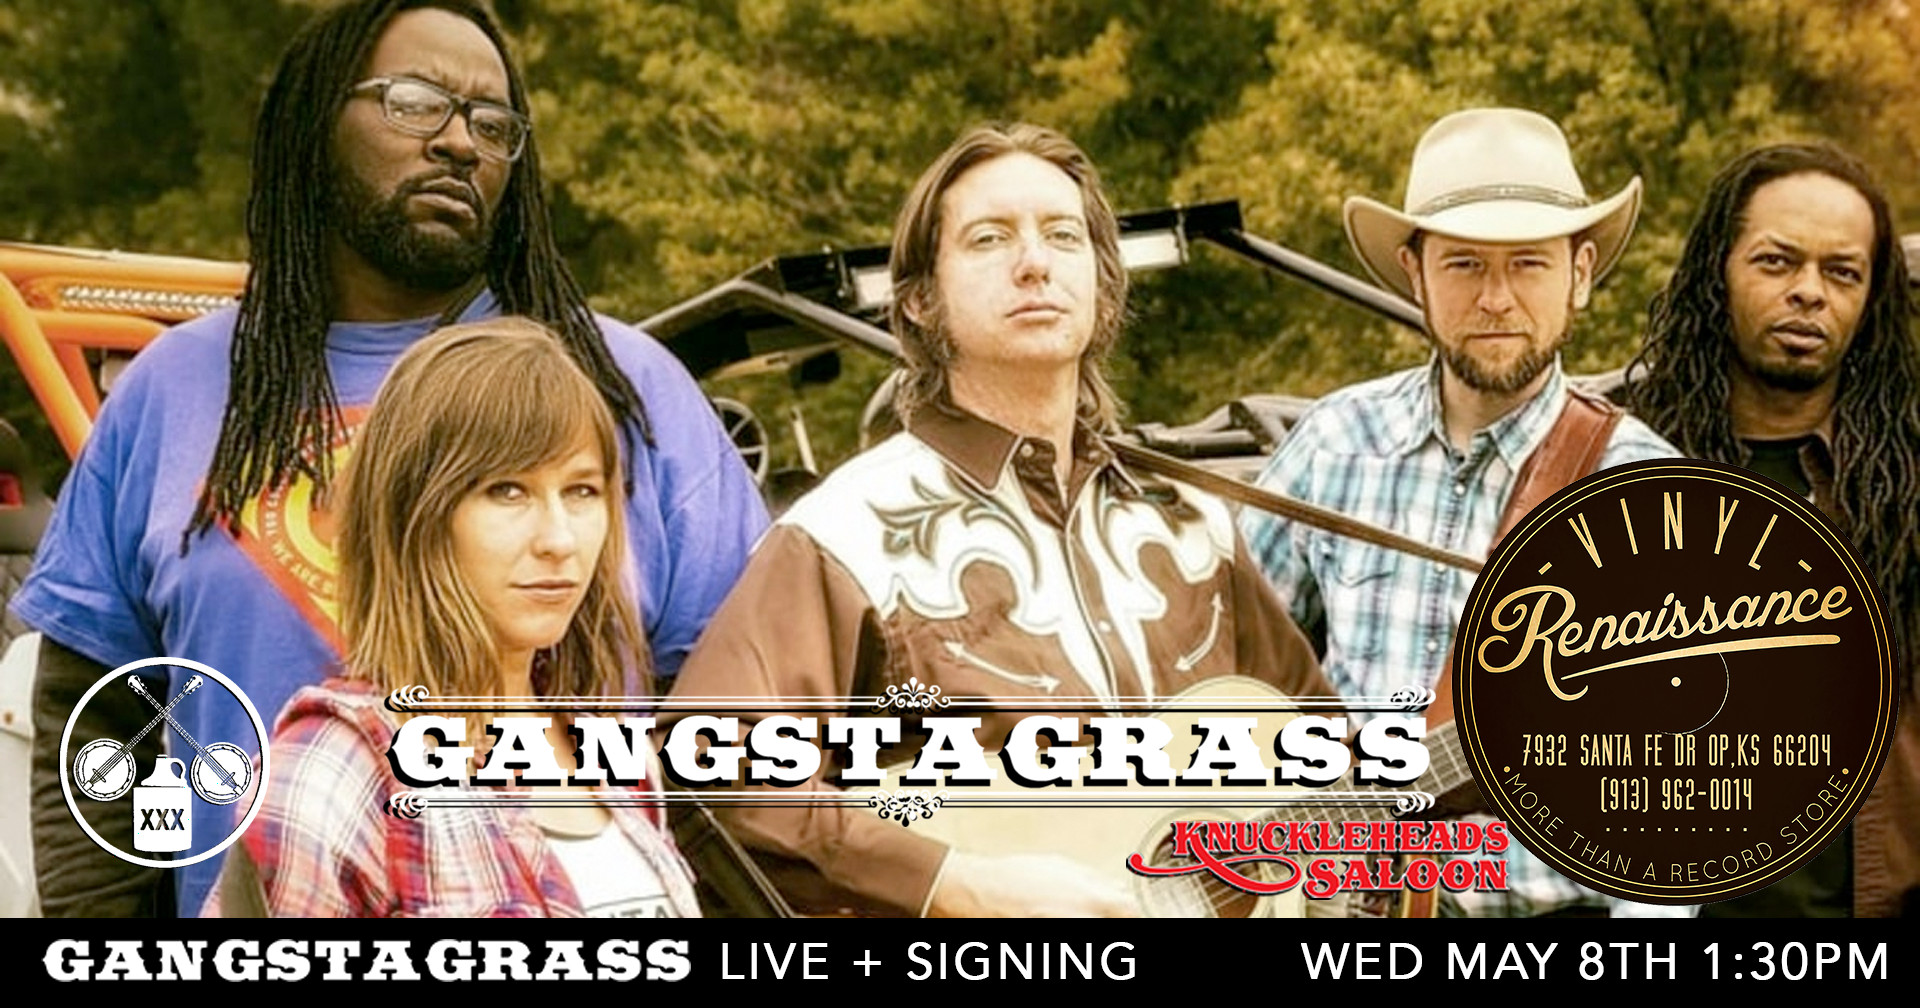 Gangstagrass - Free In-Store Performance + Signing